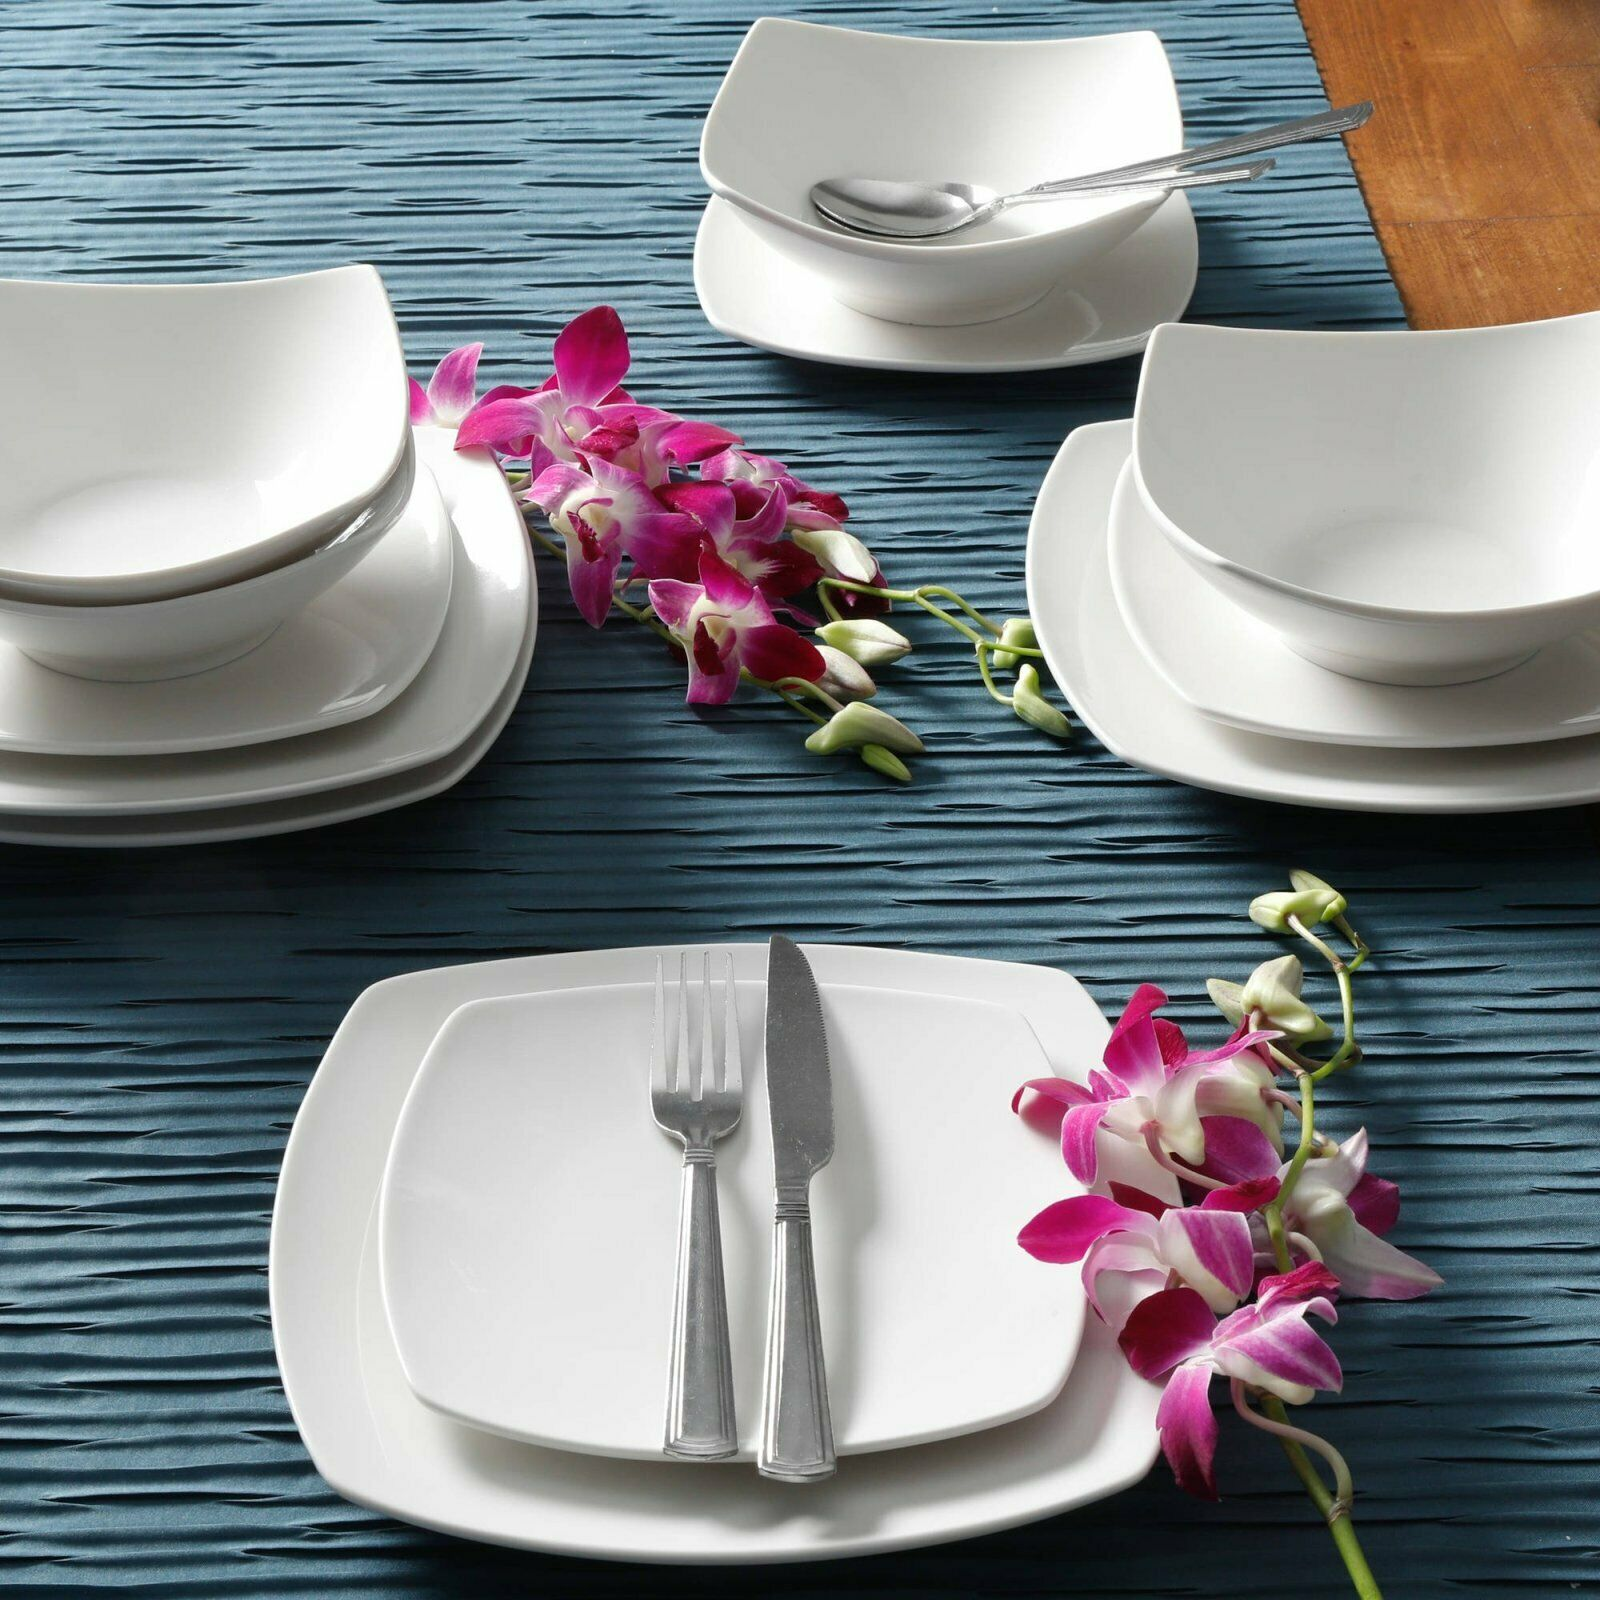 Gibson Home Everyday Square 12 Piece Dinnerware Set 11850512r For Sale Online Ebay